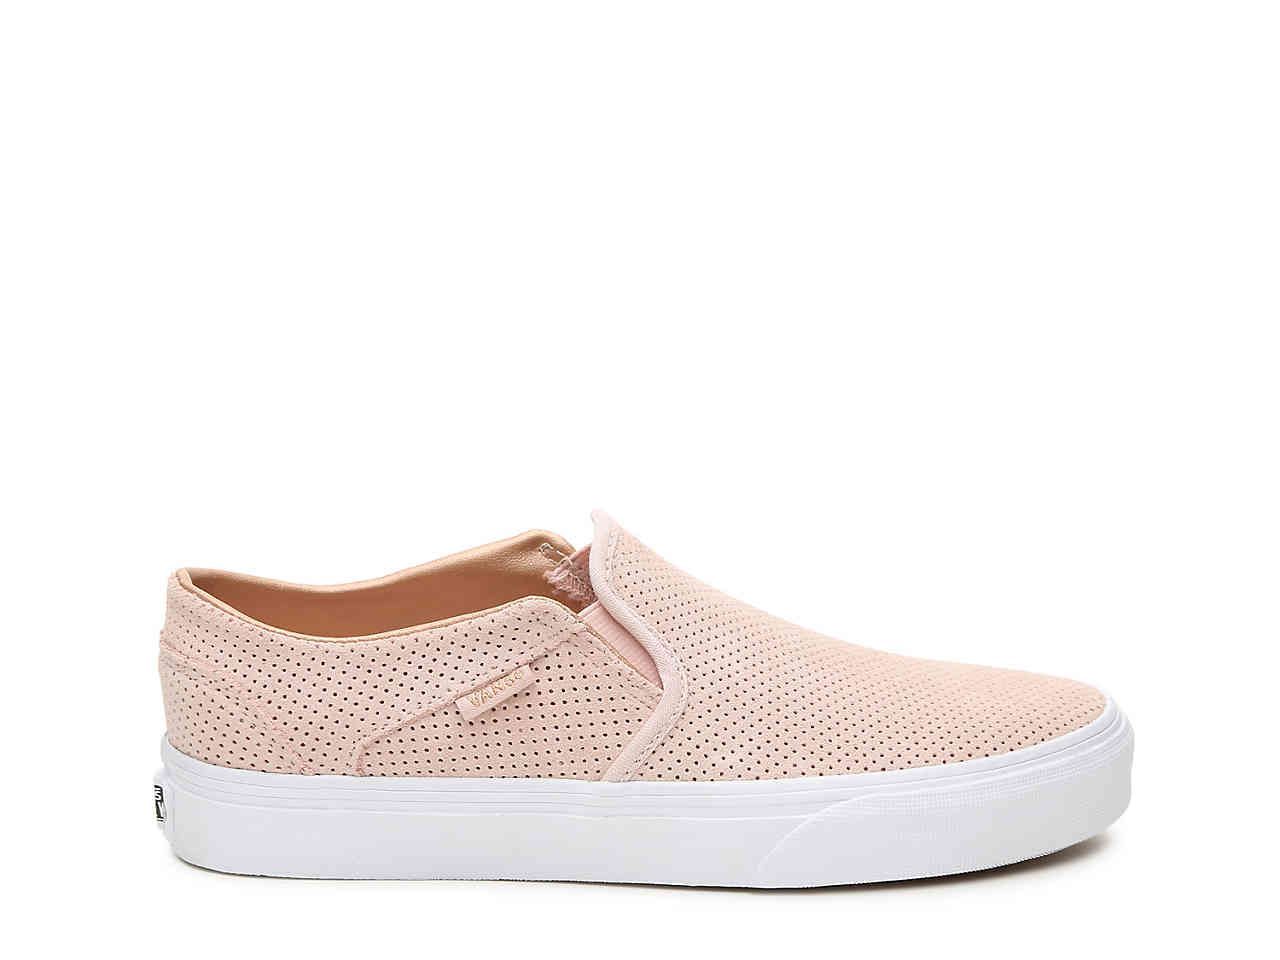 8aead0014a4 Vans Asher Perforated Slip-On Sneaker - Women s Women s Shoes